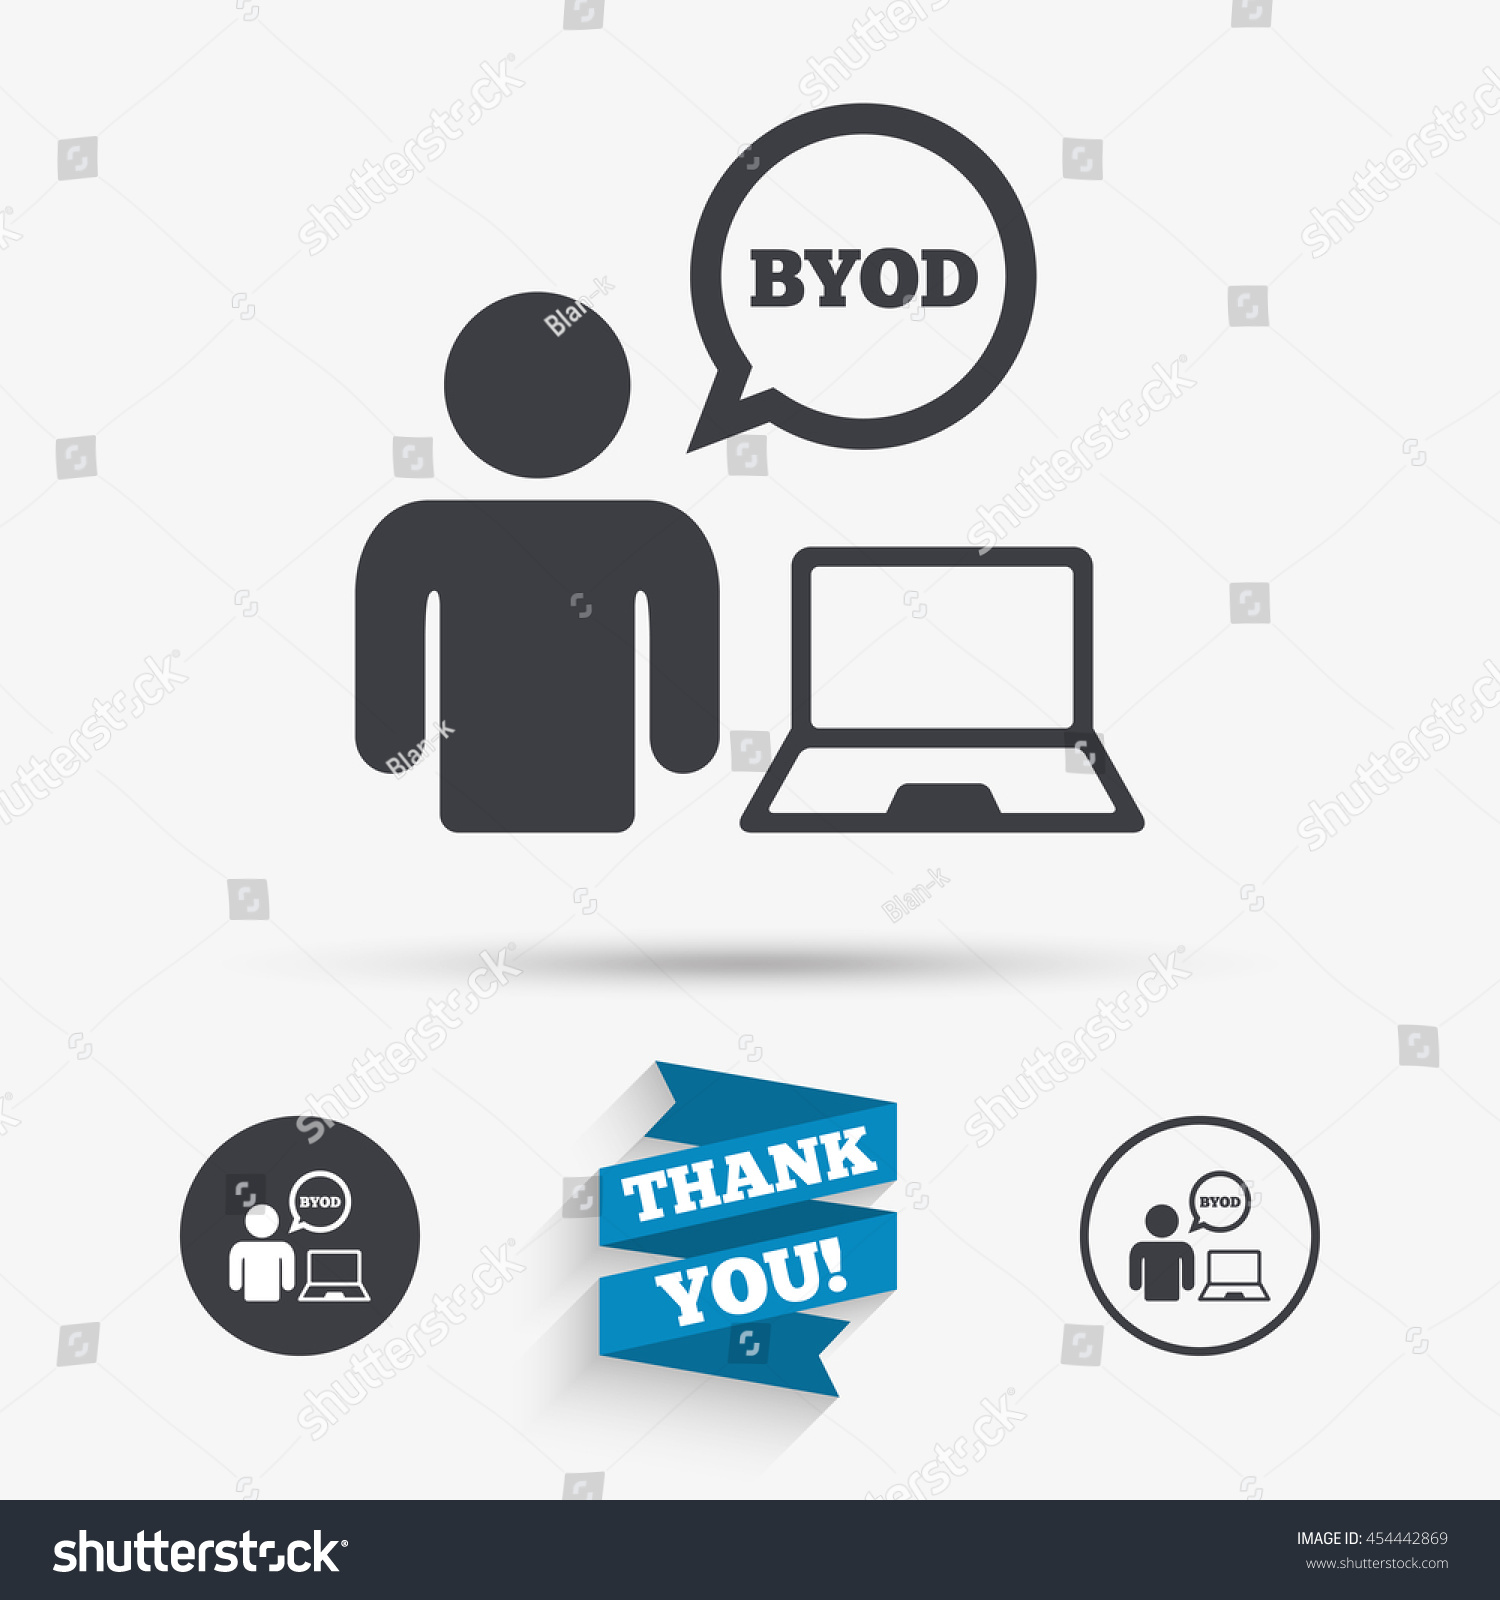 Byod sign icon bring your own stock vector 454442869 shutterstock bring your own device symbol user with laptop and speech bubble biocorpaavc Gallery